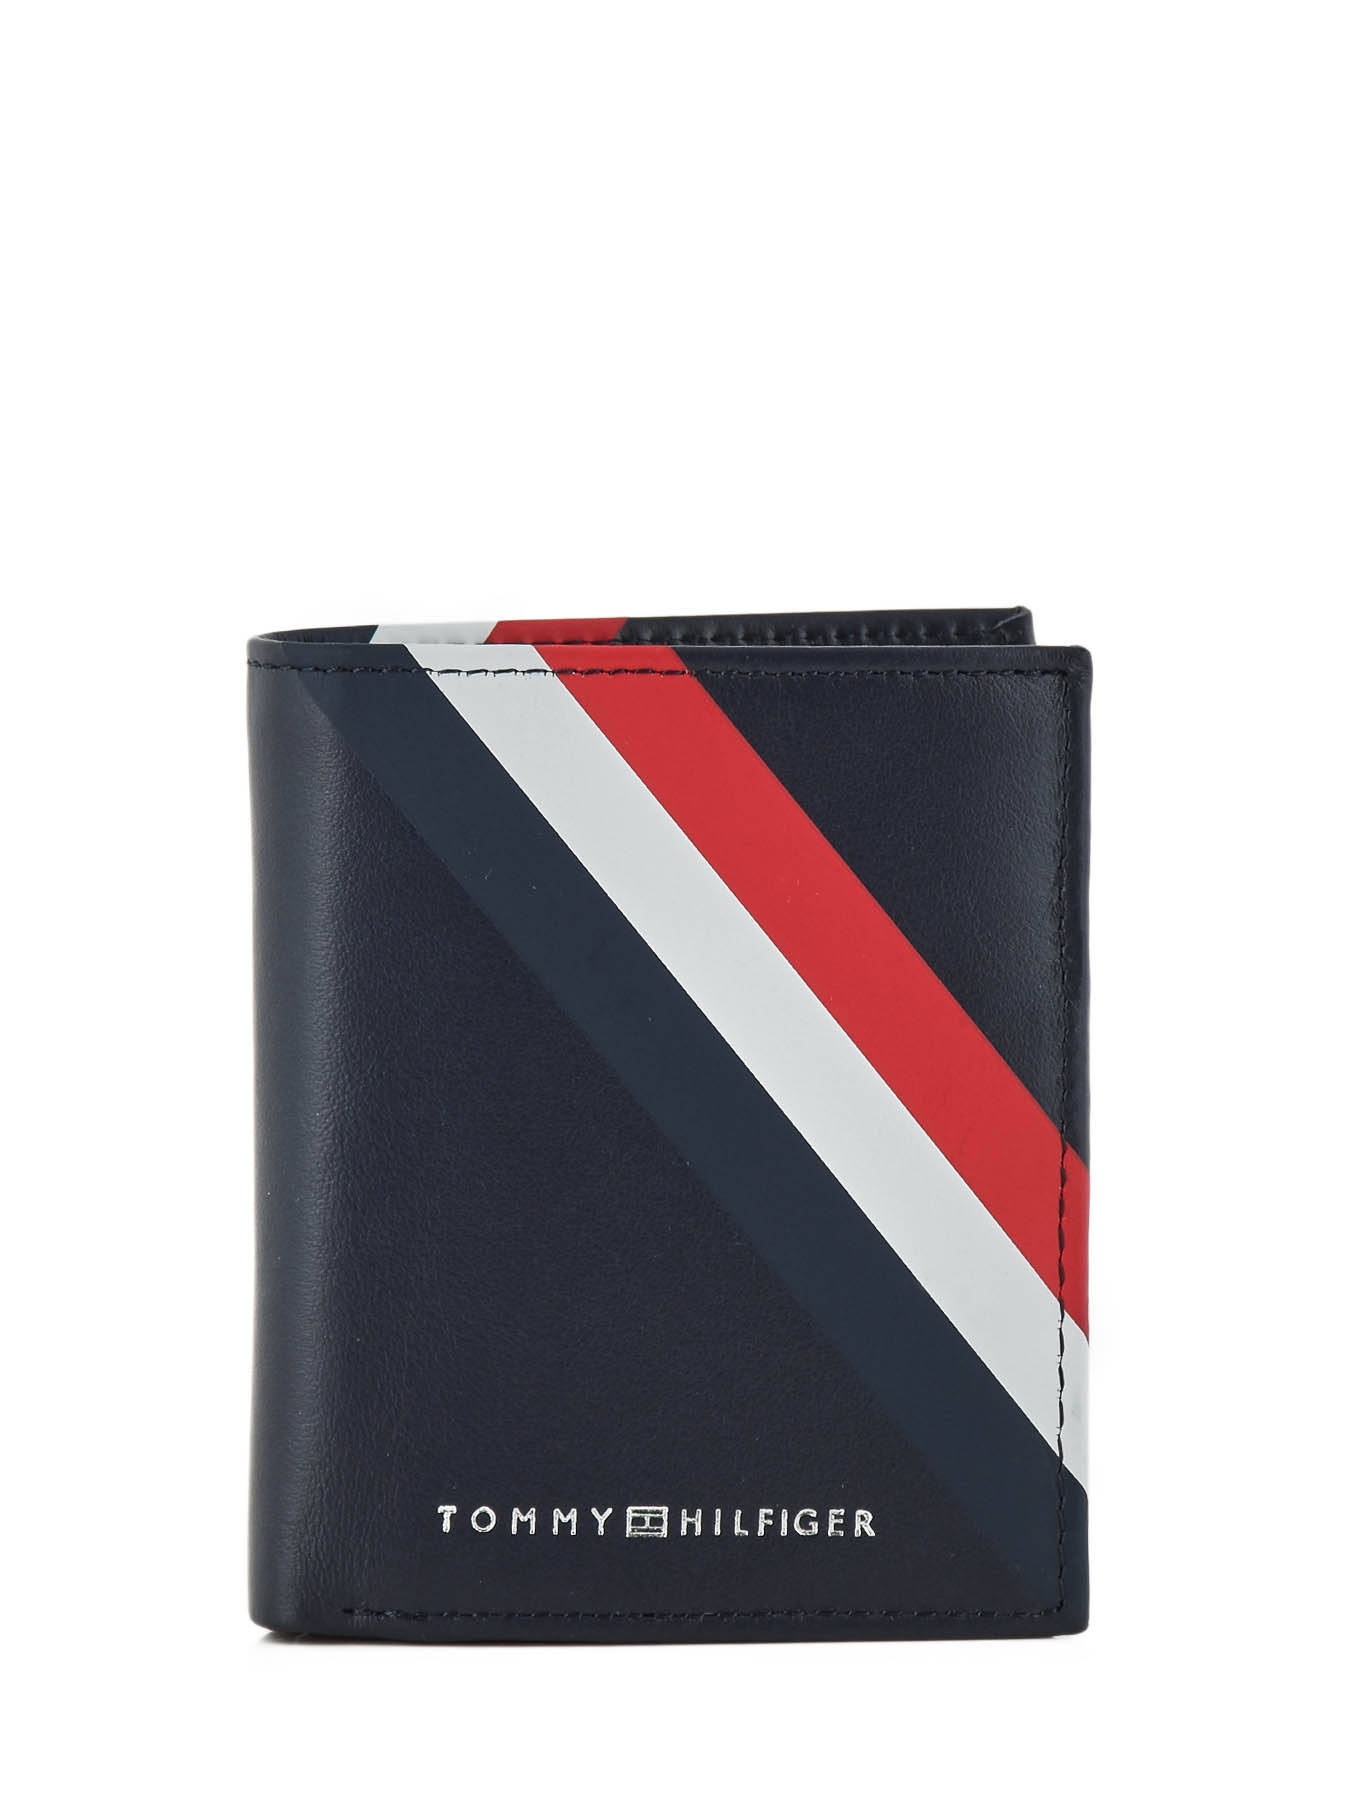 Wallet leather TOMMY HILFIGER